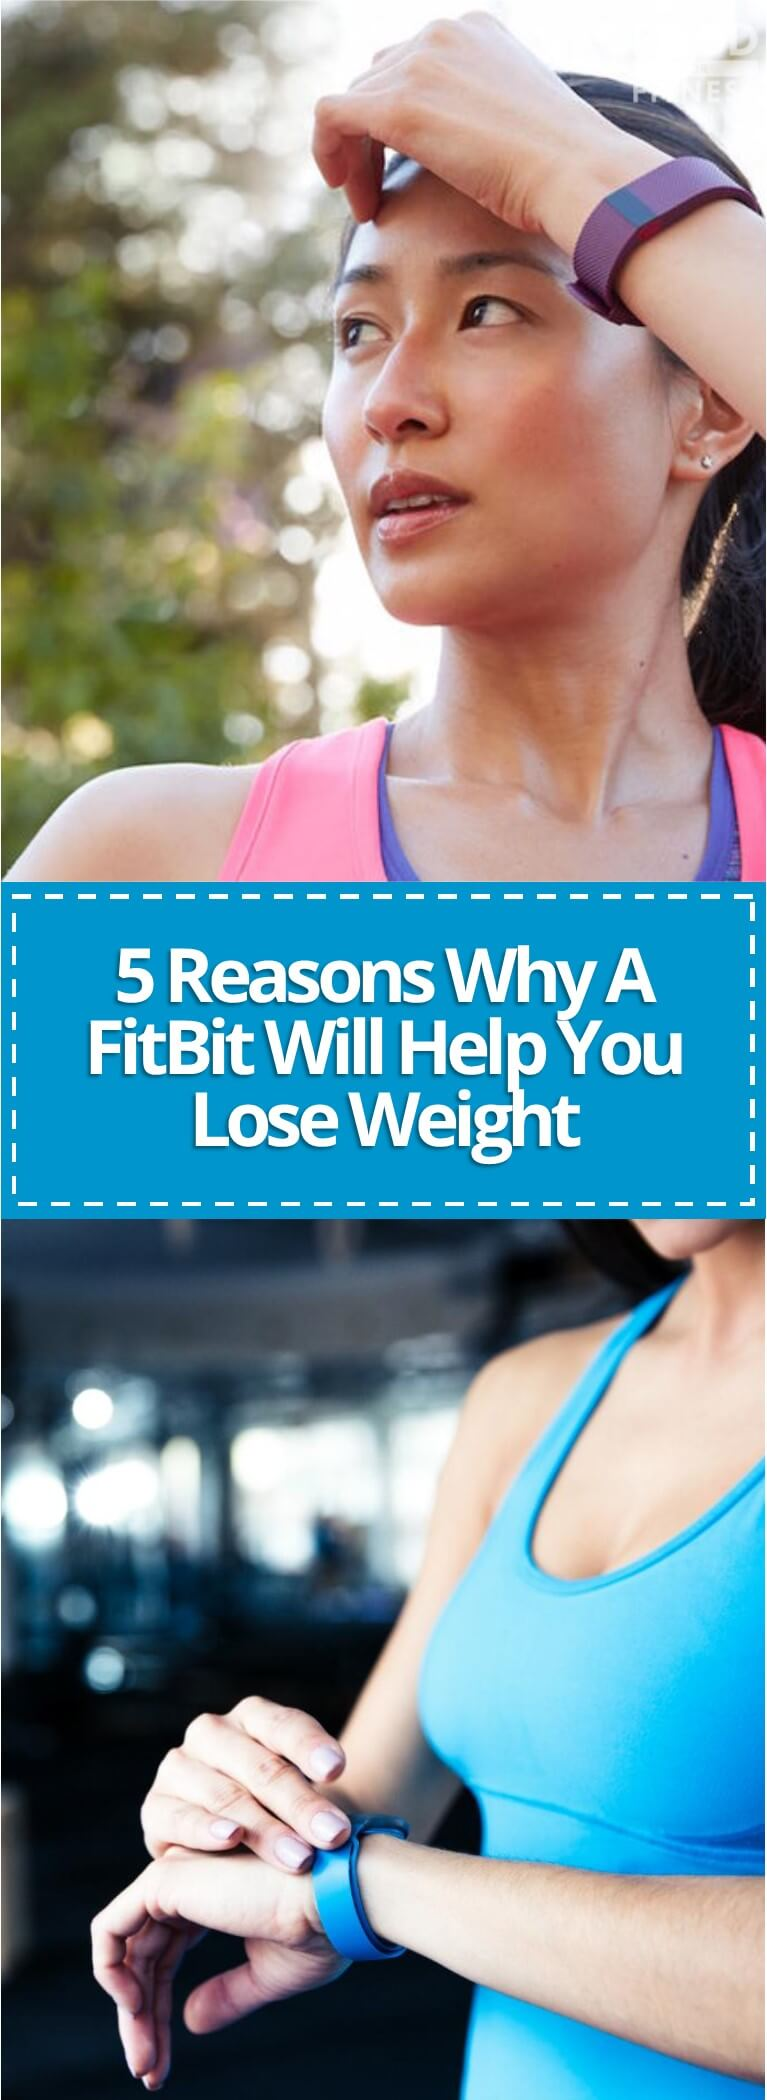 What is all the fuss about? How do you lose weight with a FitBit?